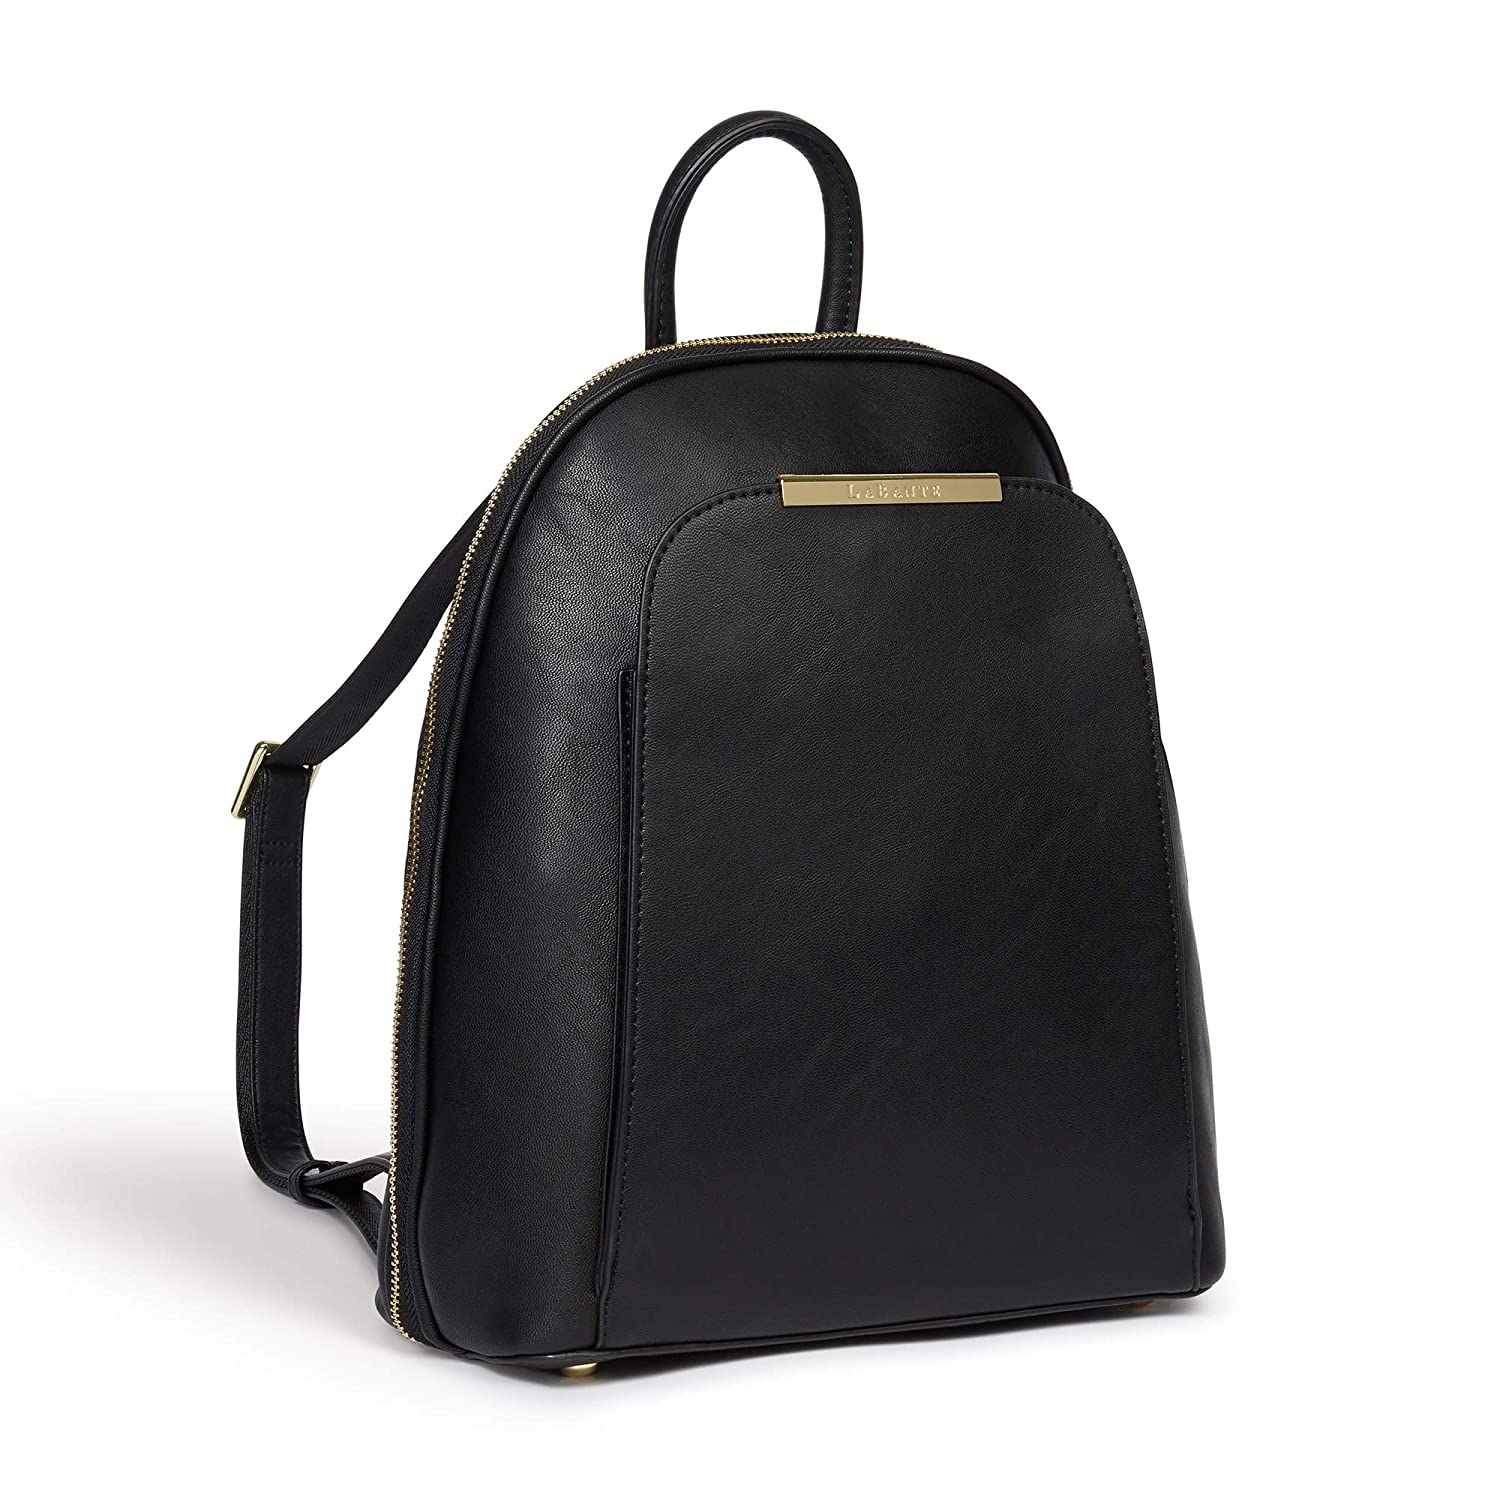 c0af02bf3 LaBante -Sycamore- Vegan Leather Backpack for women - black backpack cute  backpacks for girls womens bags fashion backpack small backpack for women ( Black)